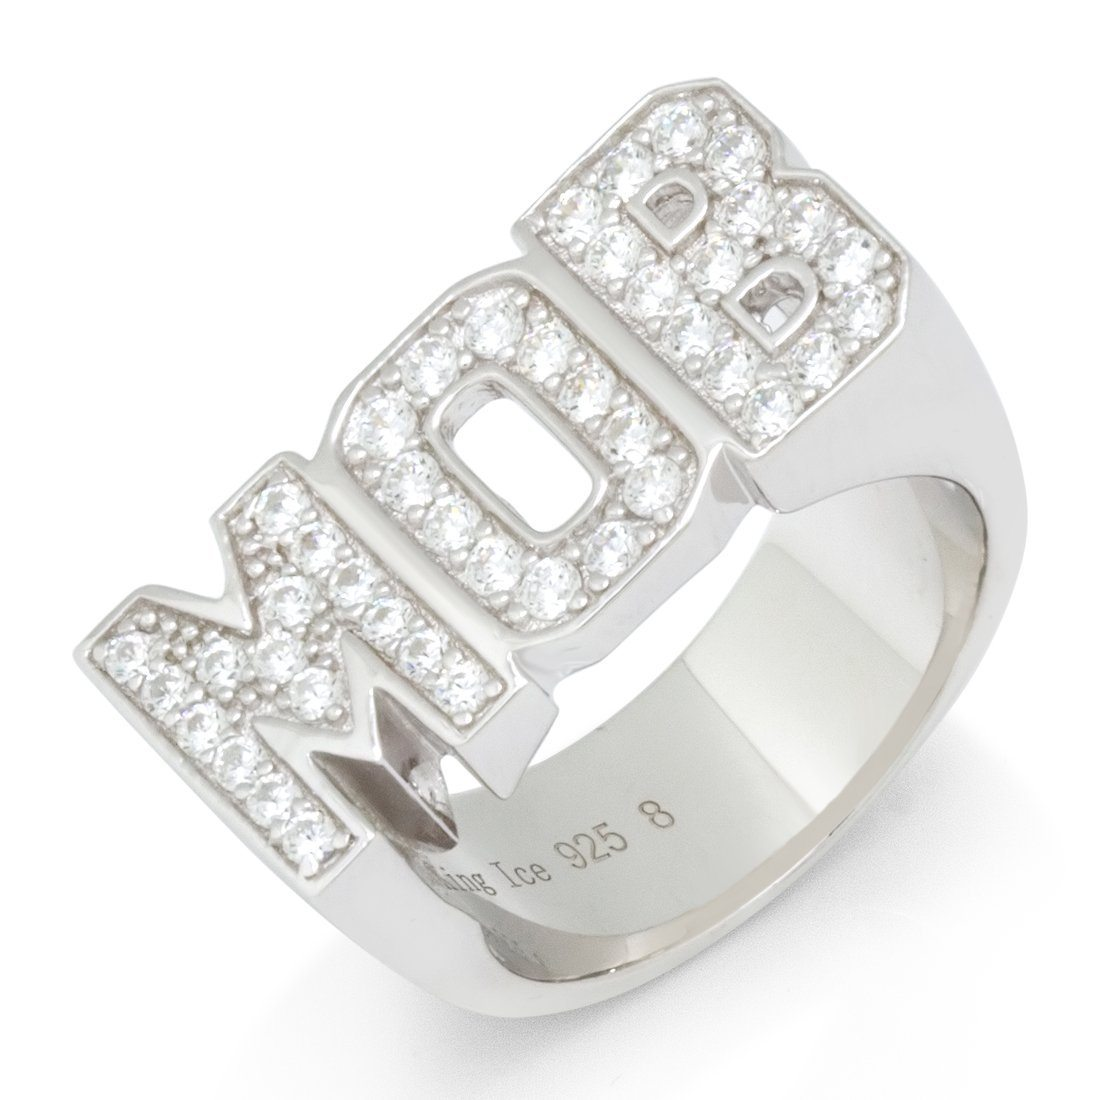 Image of The .925 Sterling Silver White Gold M.O.B Ring